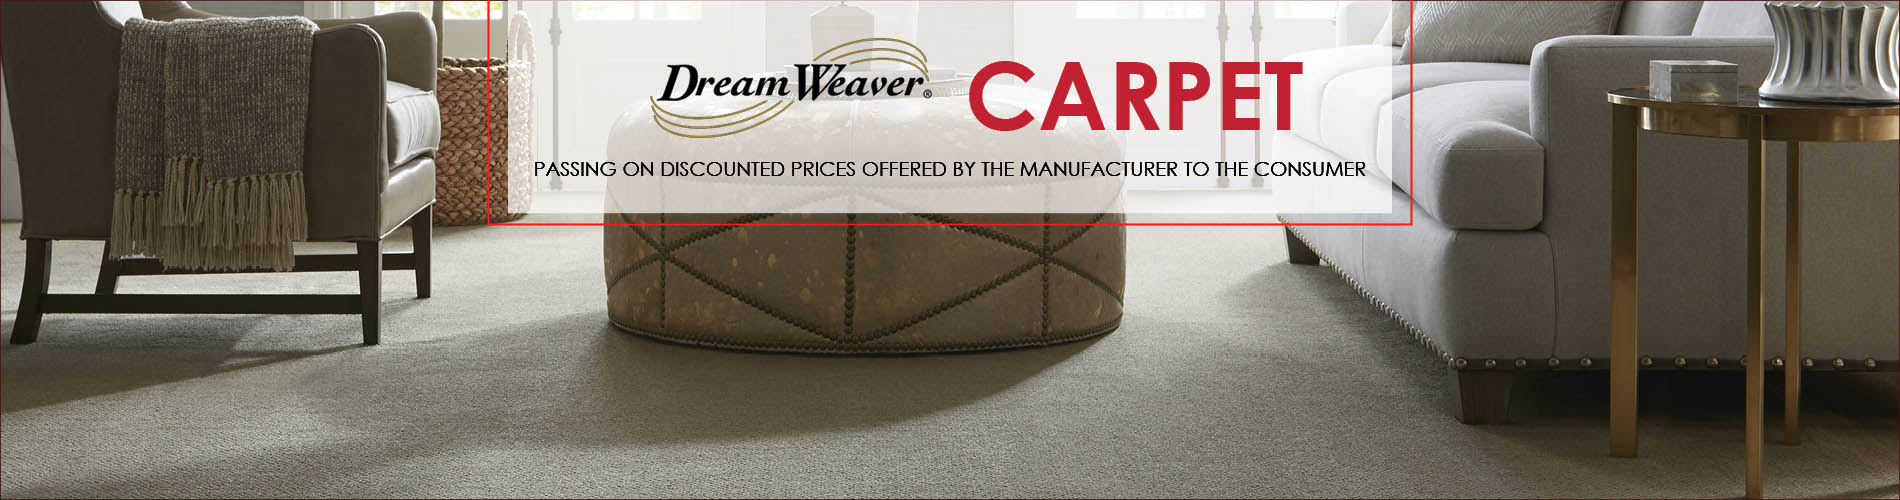 Save on DreamWeaver Carpet at Lakeside Floors To Go we are passing on discounted prices offered by the manufacturer directly to you!